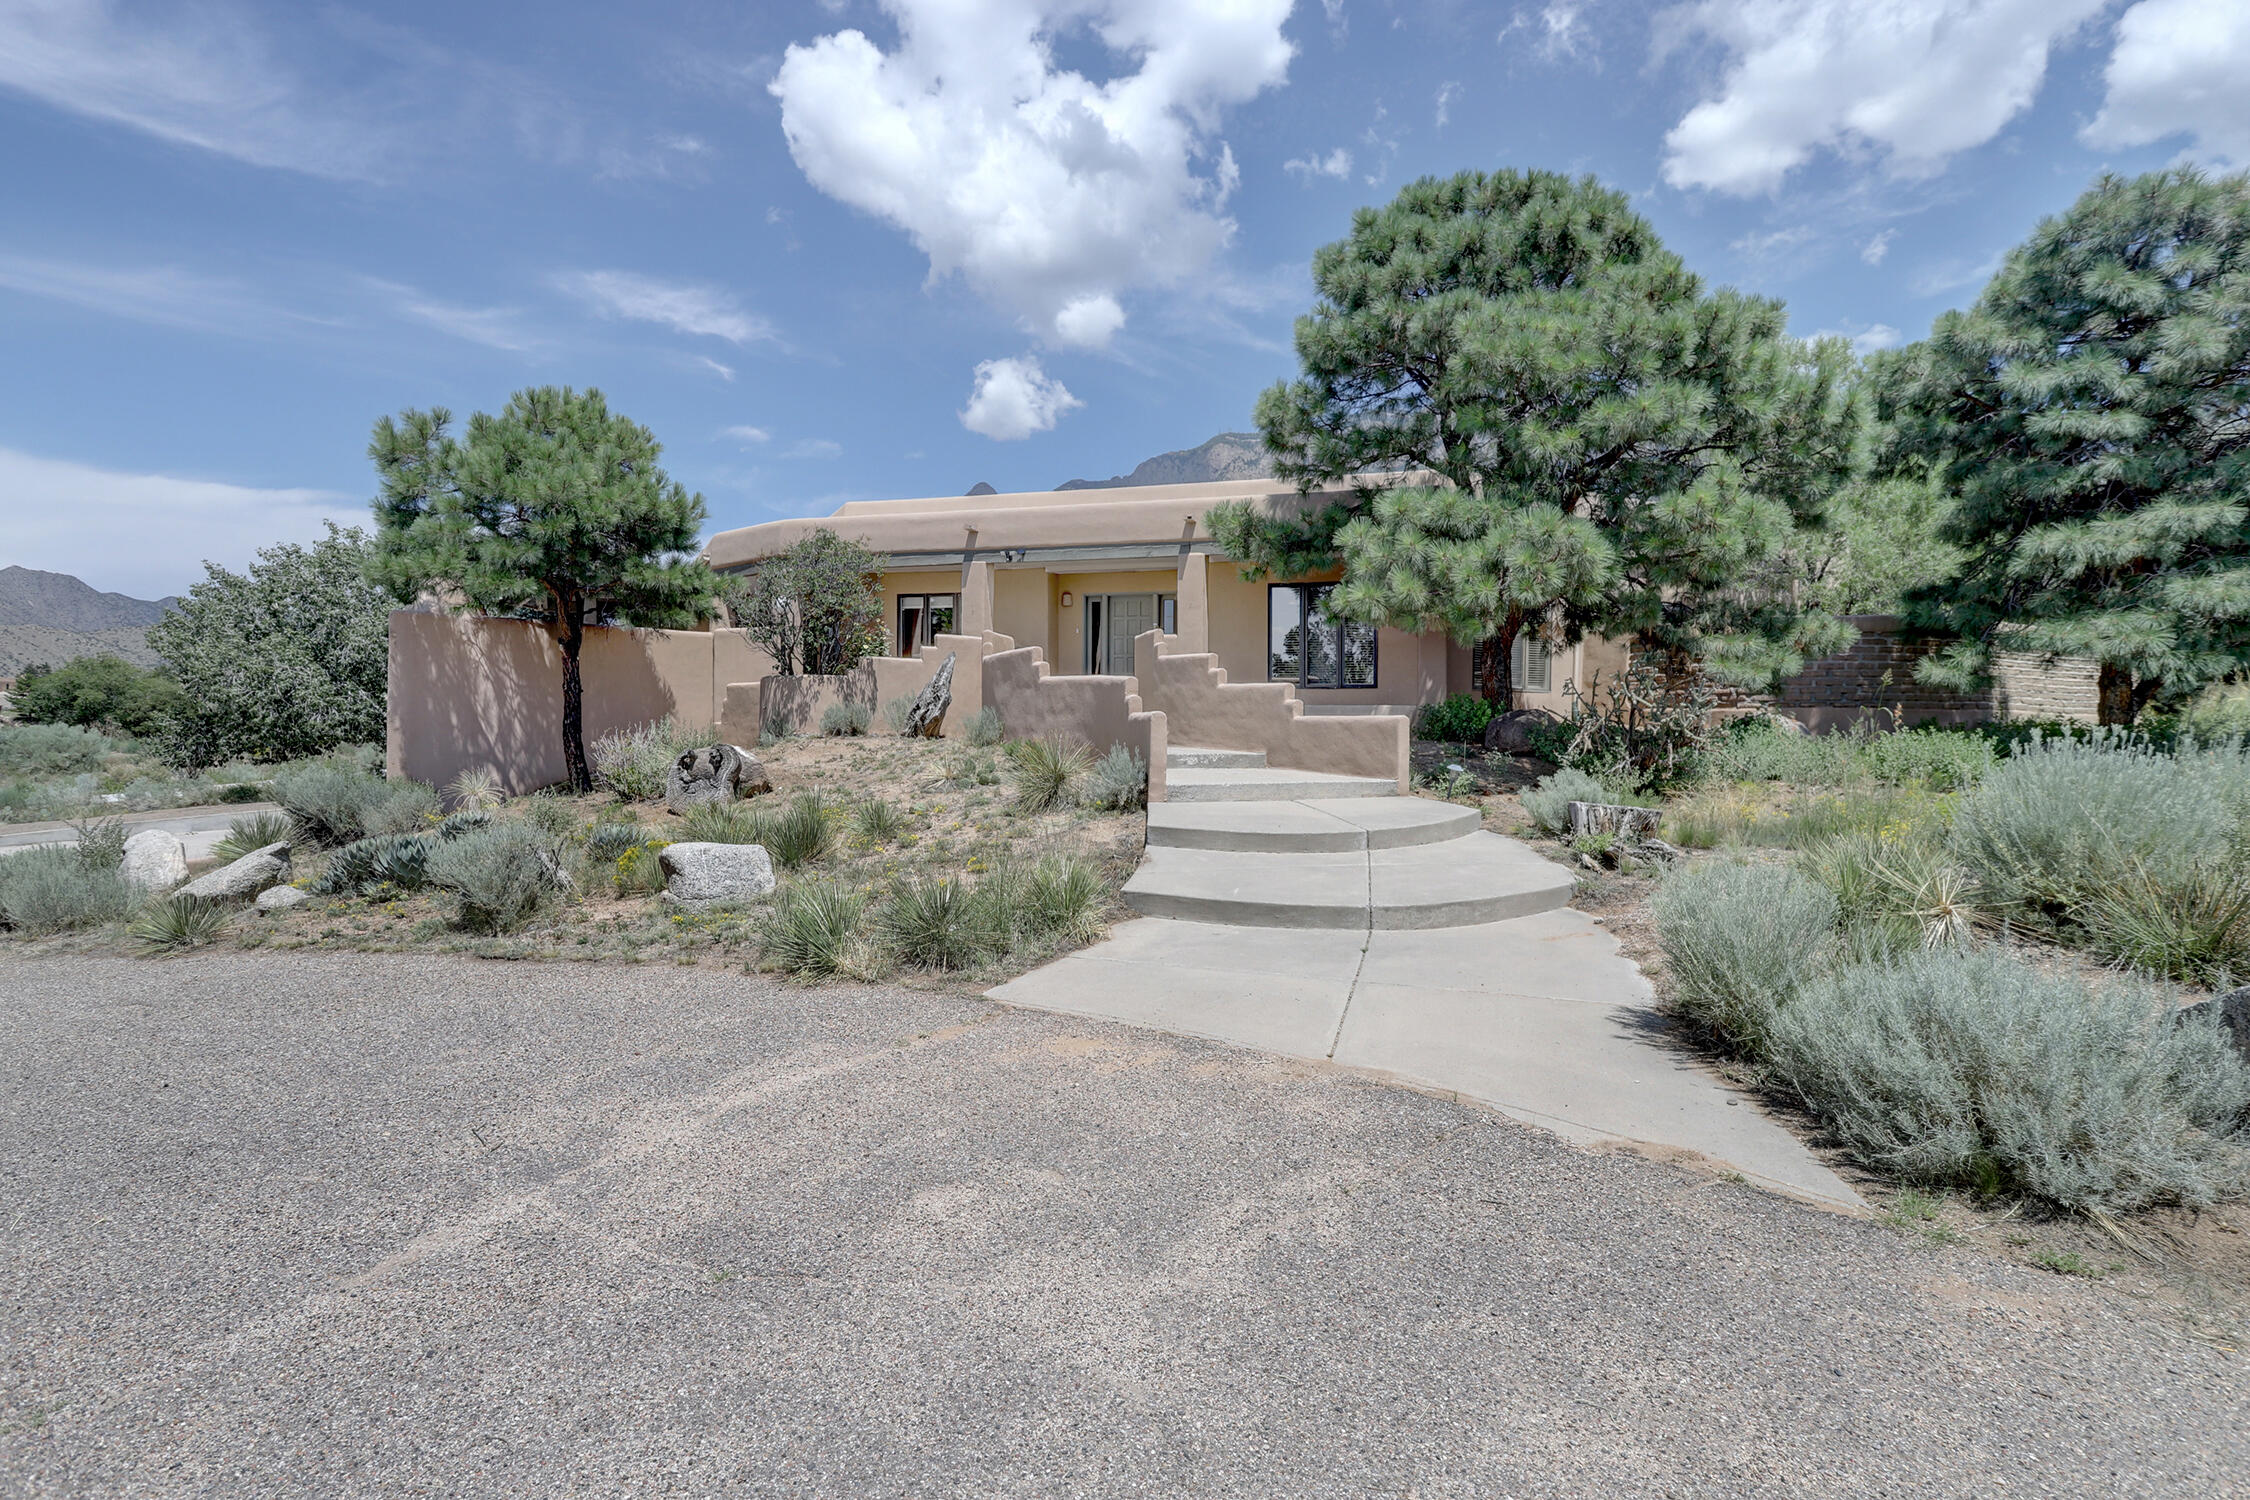 Magnificent Southwest Home. An absolute charmer nestled on a  premier one acre plus view lot! Mountain to city (east/west) stunning vistas to enjoy.  Gourmet kitchen with stainless steel appliances, walk in pantry ( with a dumbwaiter to the garage ), cozy 2 sided fireplace which warms both the kitchen and dining room areas, large pass through window to an unbelievable front deck and barbecue area, great for entertaining and taking in the city lights. Large master bedroom, private hot tub area, master bathroom (including a jetted  tub)  Great living room and den spaces for entertaining or just some quiet time. The backyard is framed by the stunning Sandia mountains. This home also provides a lower level  media / theater room, guest bedroom and 3/4 bath.